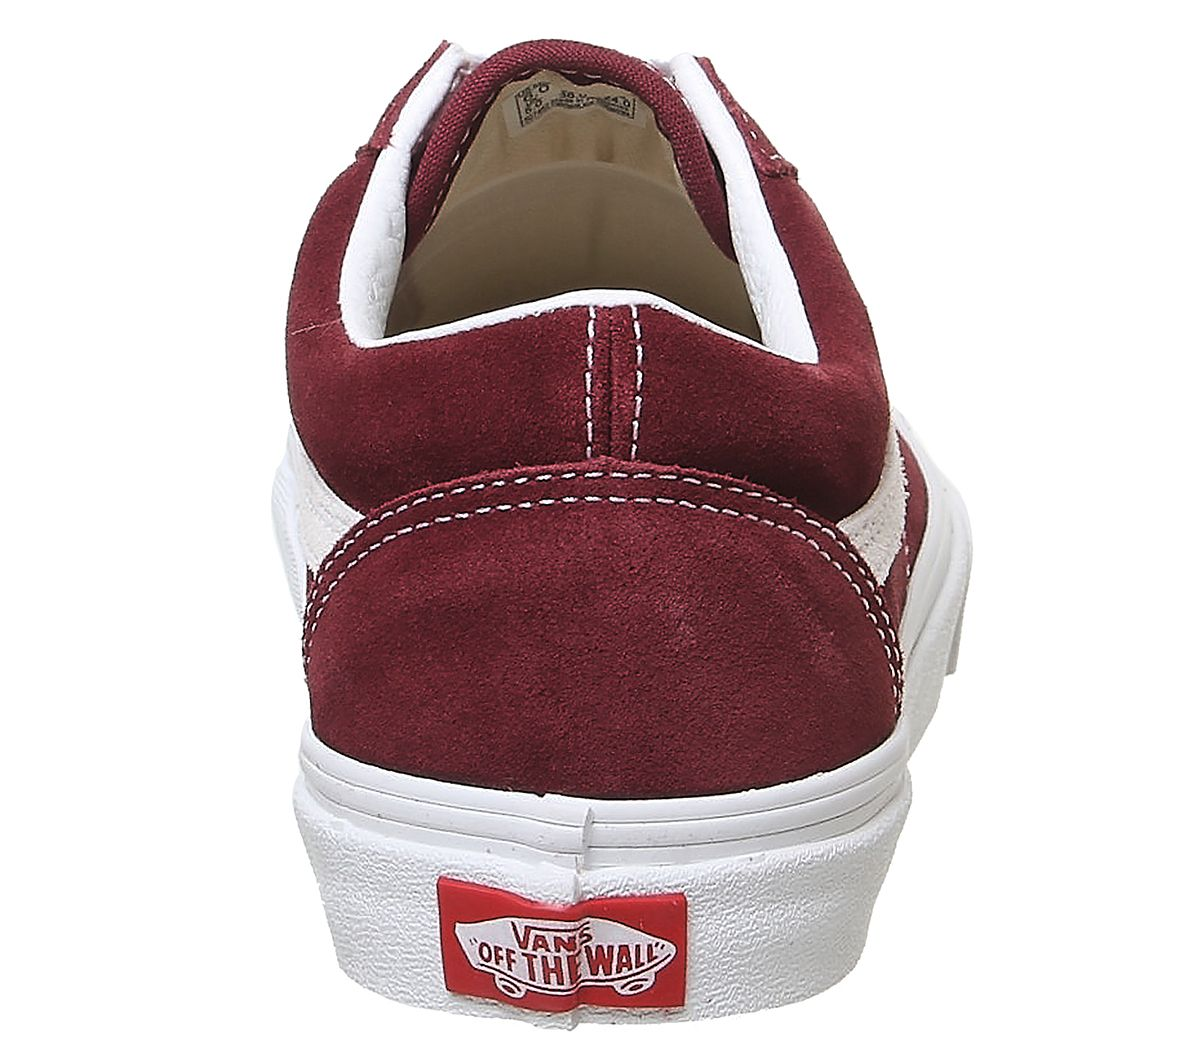 Vans-Old-Skool-Baskets-Port-Royale-Baskets-Chaussures miniature 3